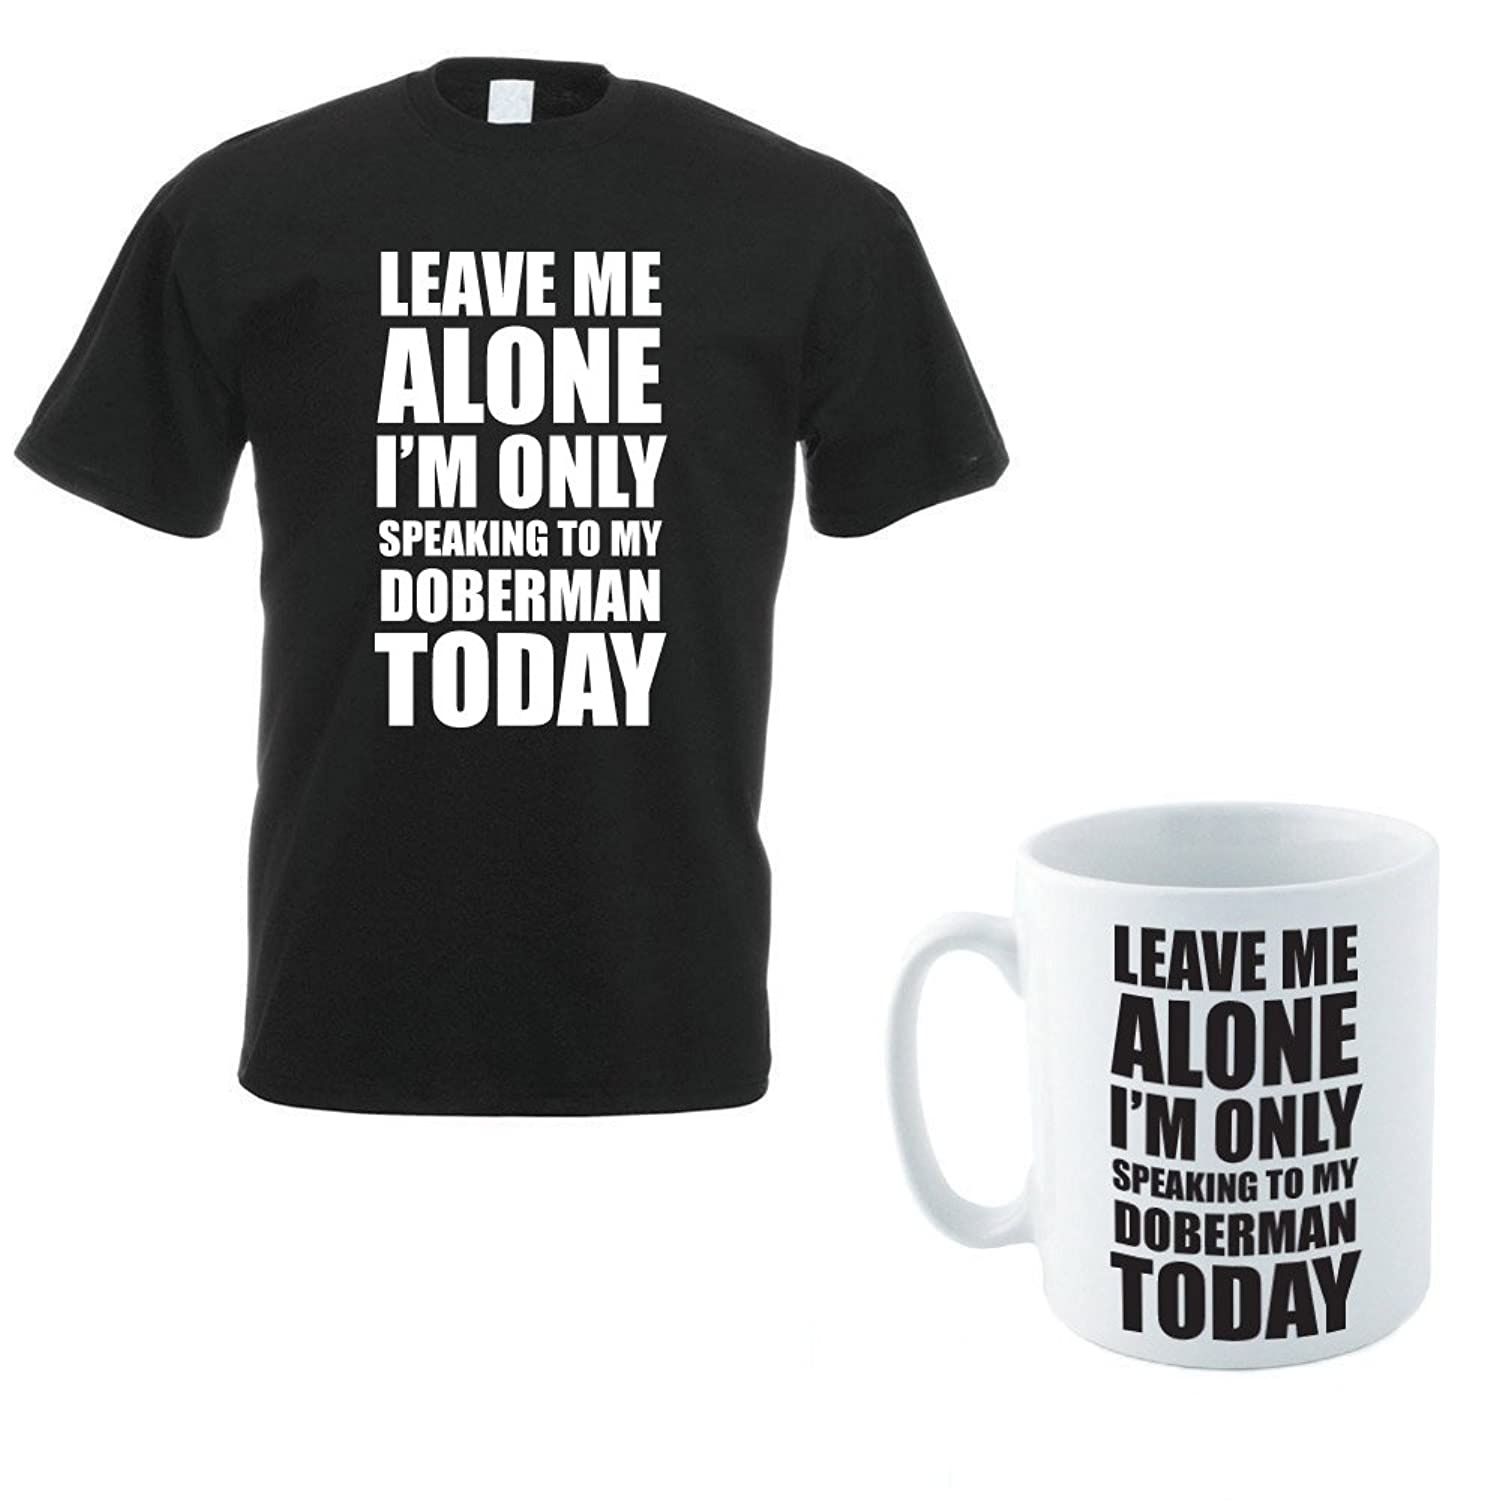 LEAVE ME ALONE I'M ONLY SPEAKING TO MY DOBERMAN TODAY - Dog / Gift / Novelty Themed Men's T-Shirt & Ceramic Mug Set